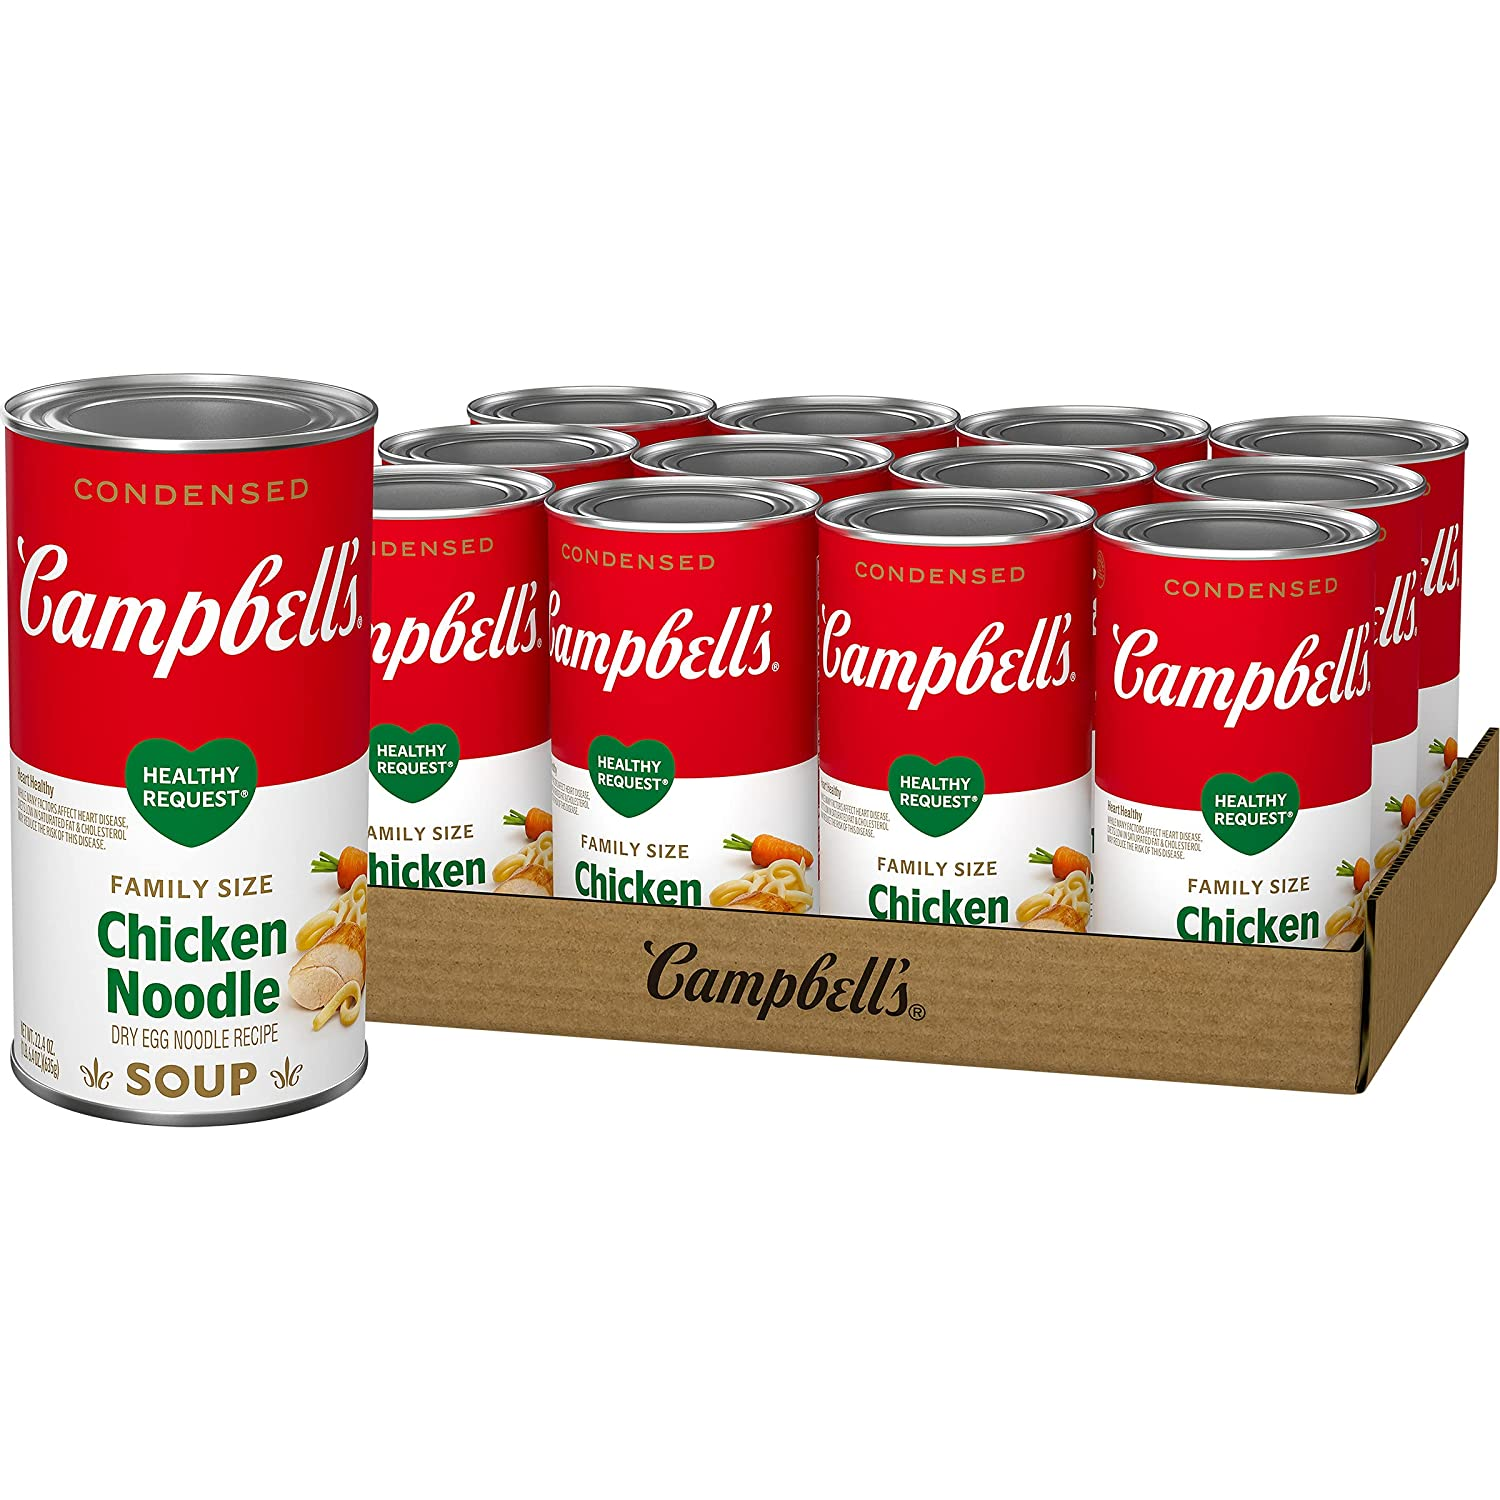 Campbell'sCondensedHealthy RequestFamily Raleigh We OFFer at cheap prices Mall Size Chicke